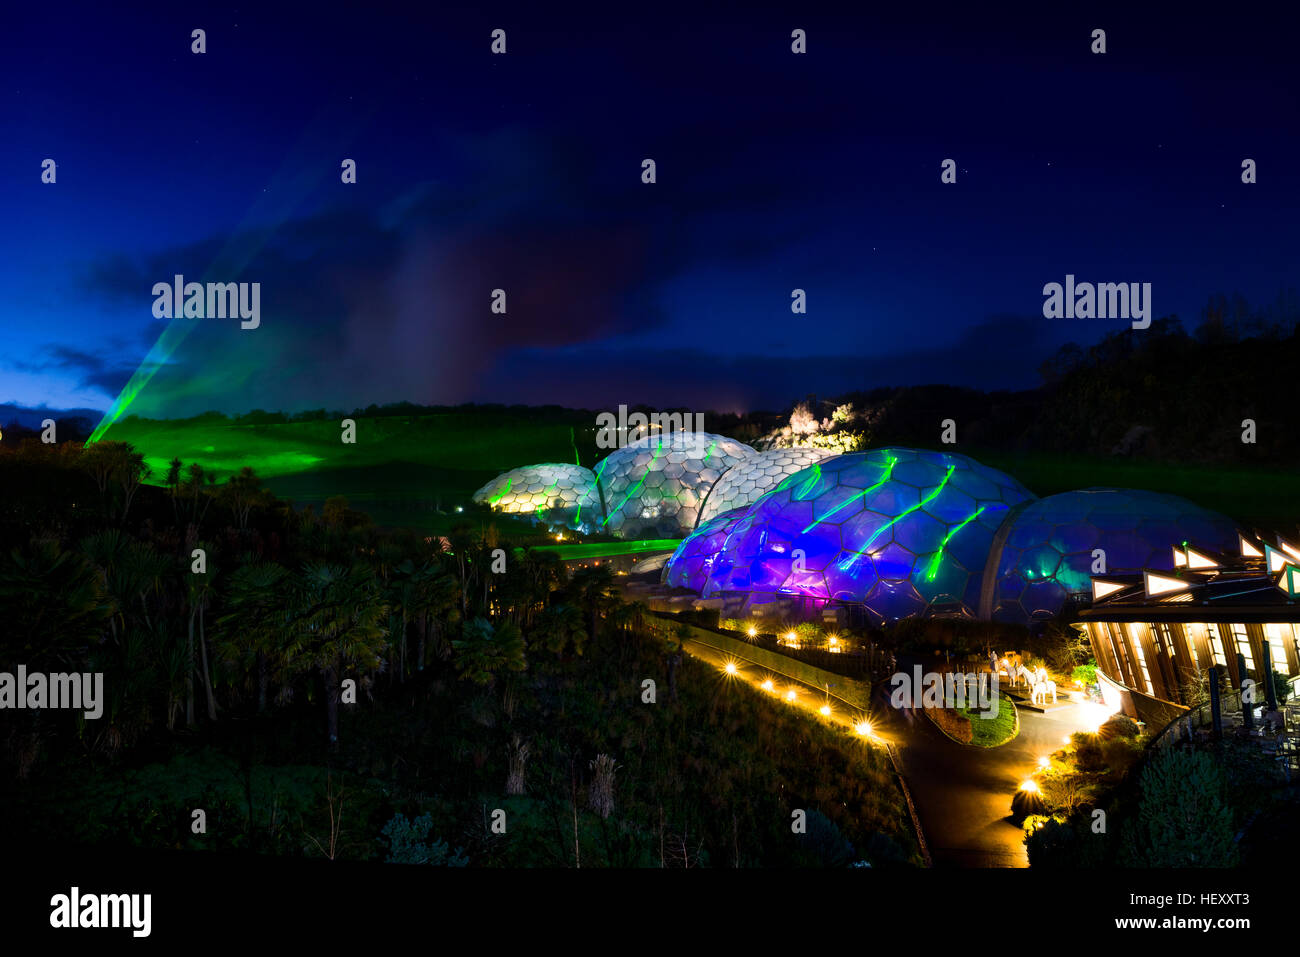 Eden Project Light and Sound Event, Eden Project, Cornwall, UK taken throughout December 2016 - Stock Image